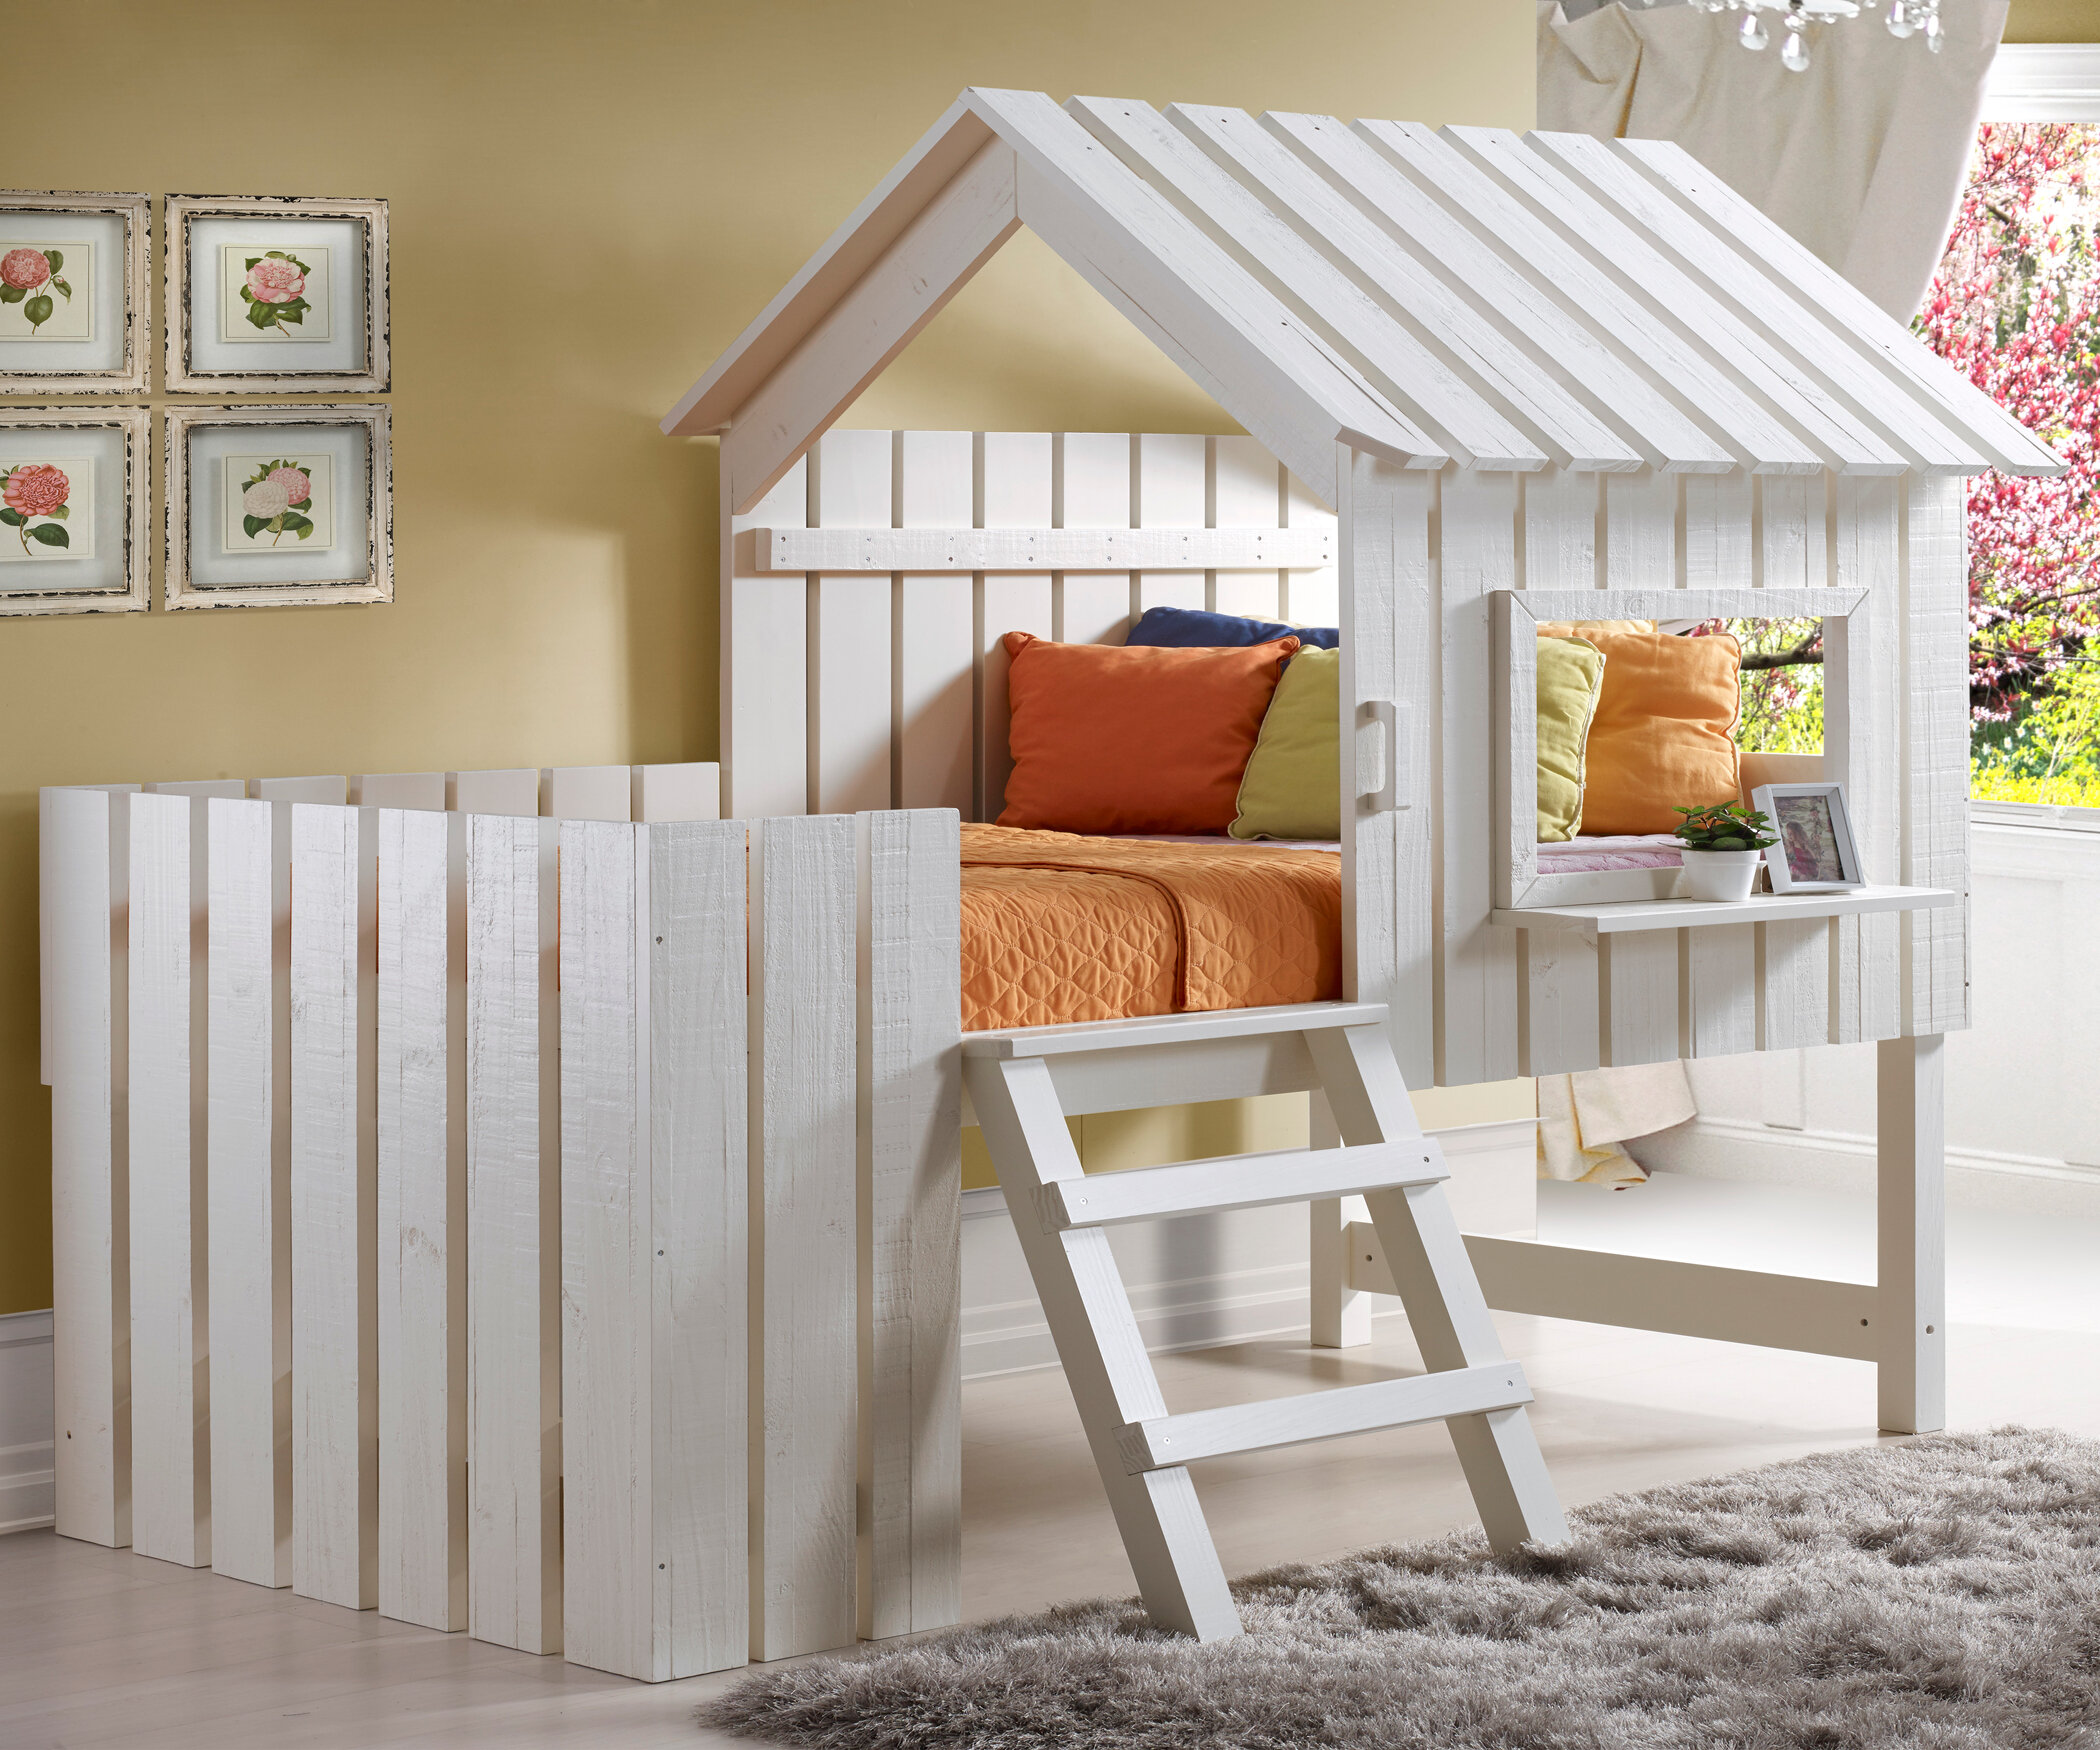 bunk bed house htm zoom loft ne ceiling lower low lake beds with kids white full to productdetail hover